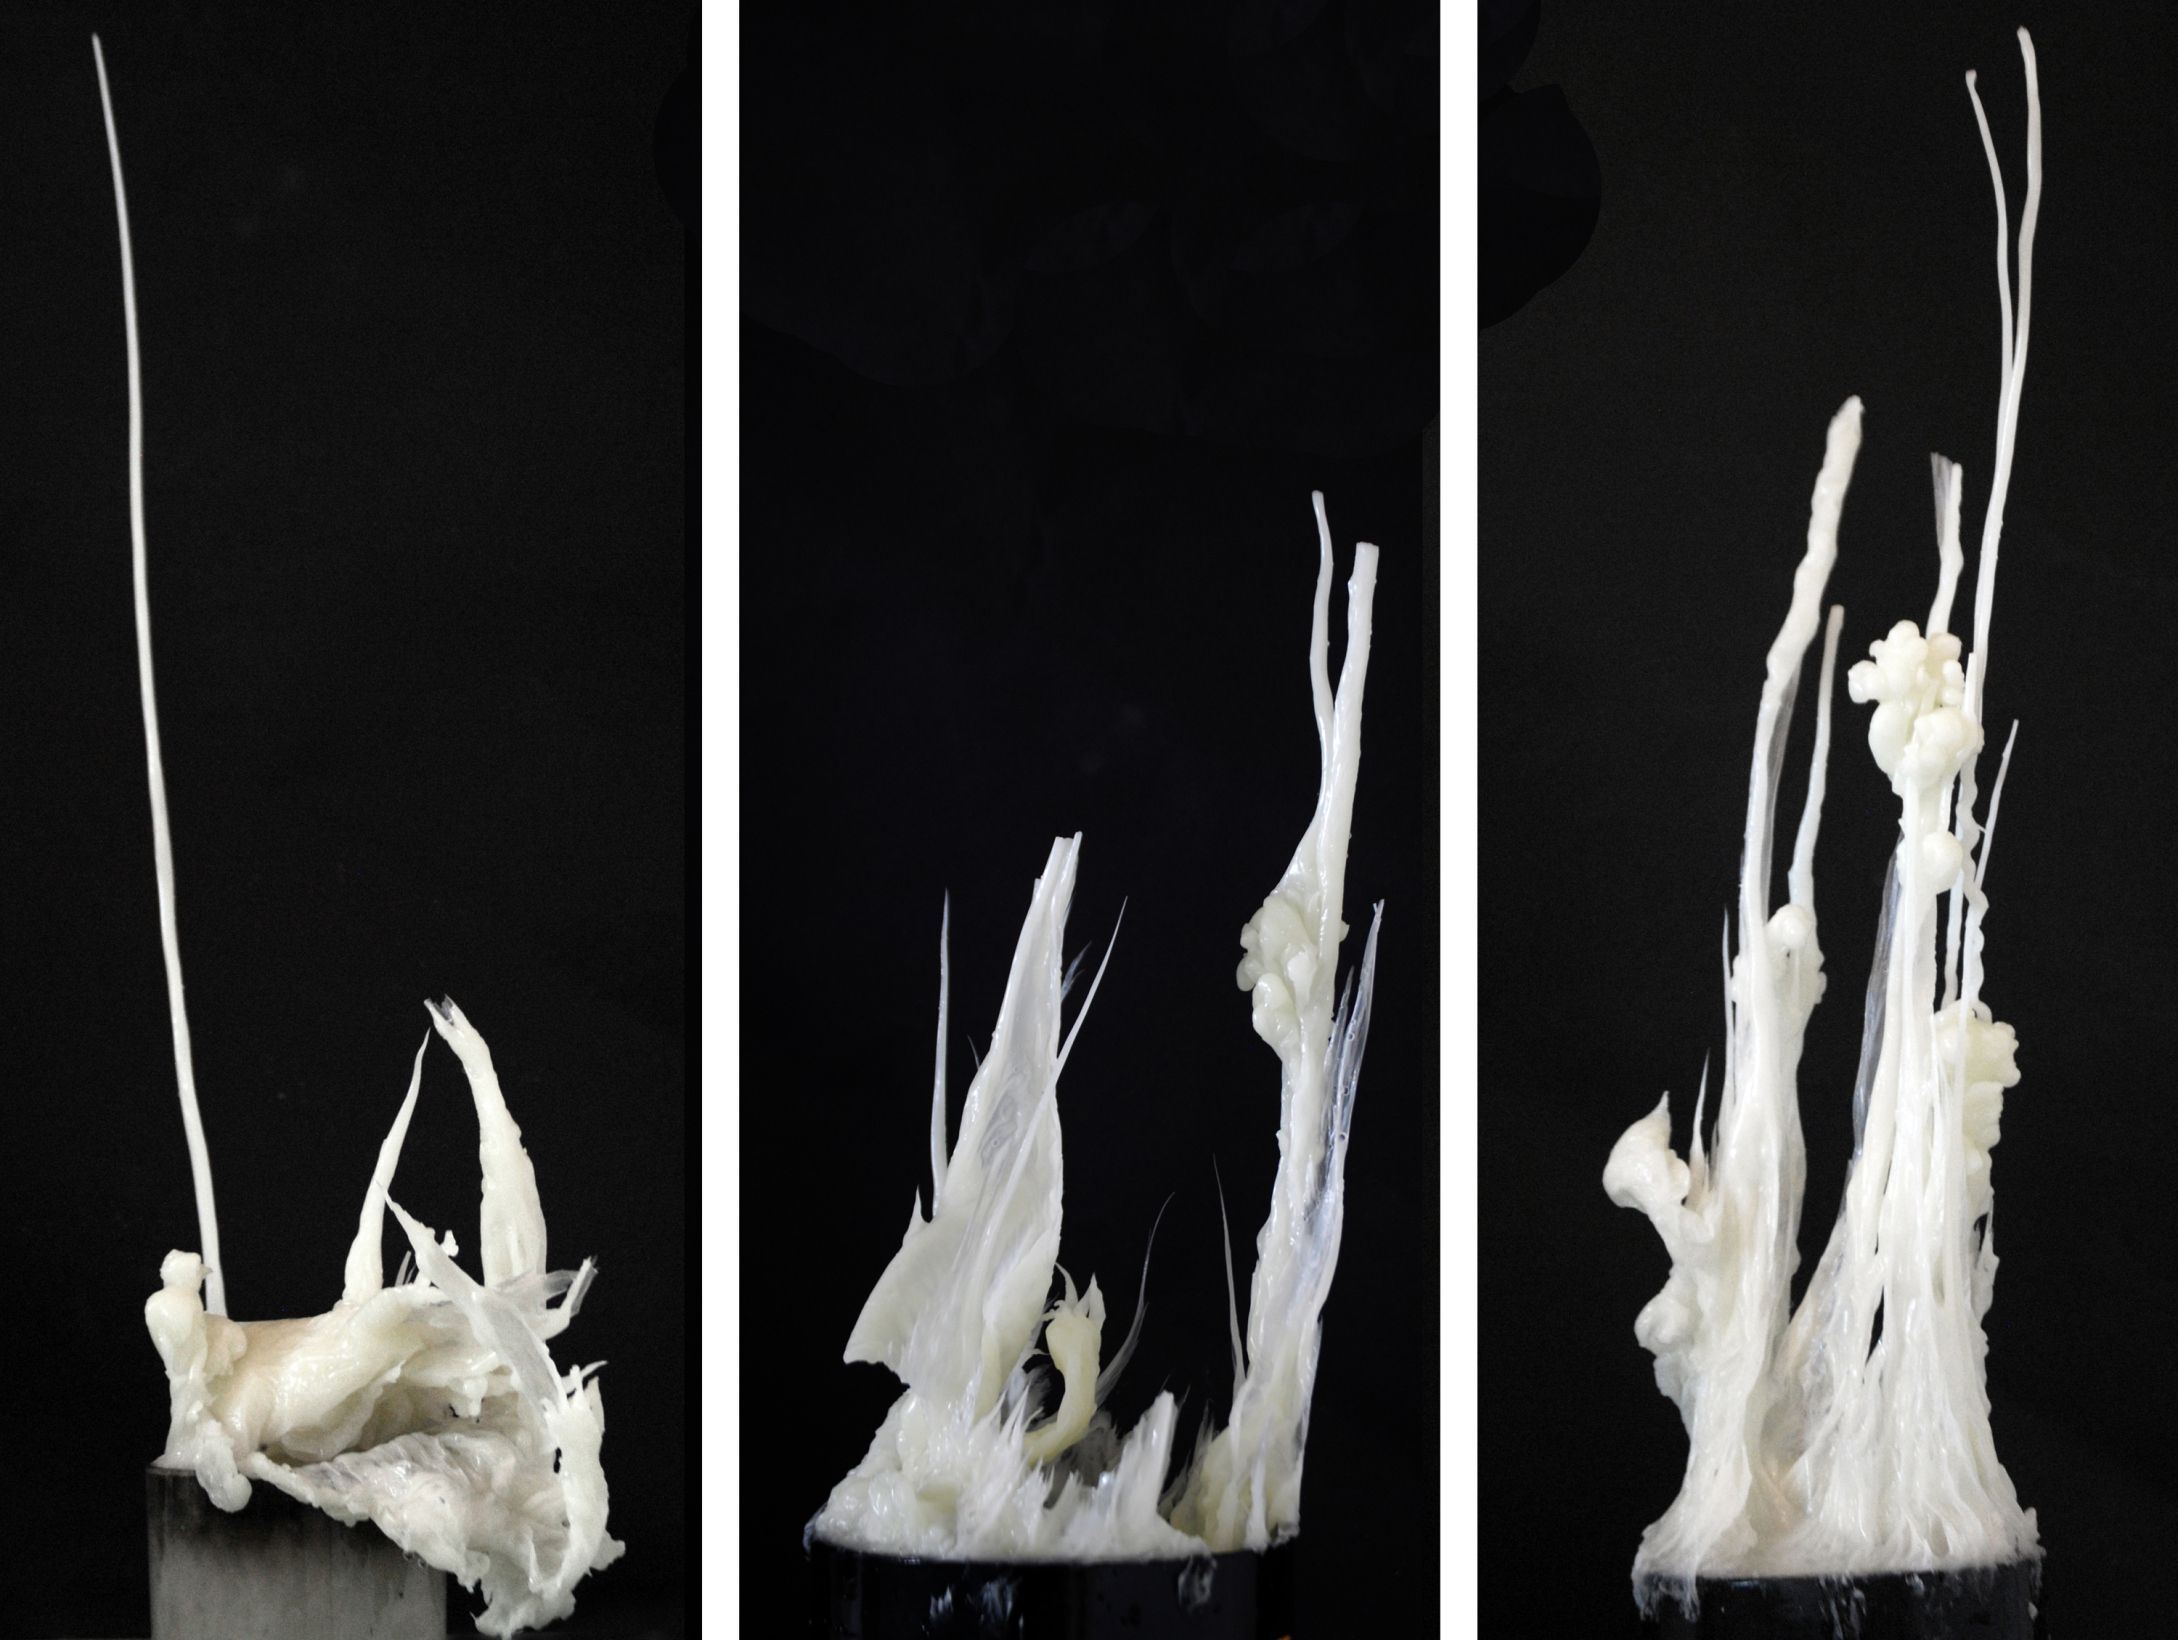 Wax Structures